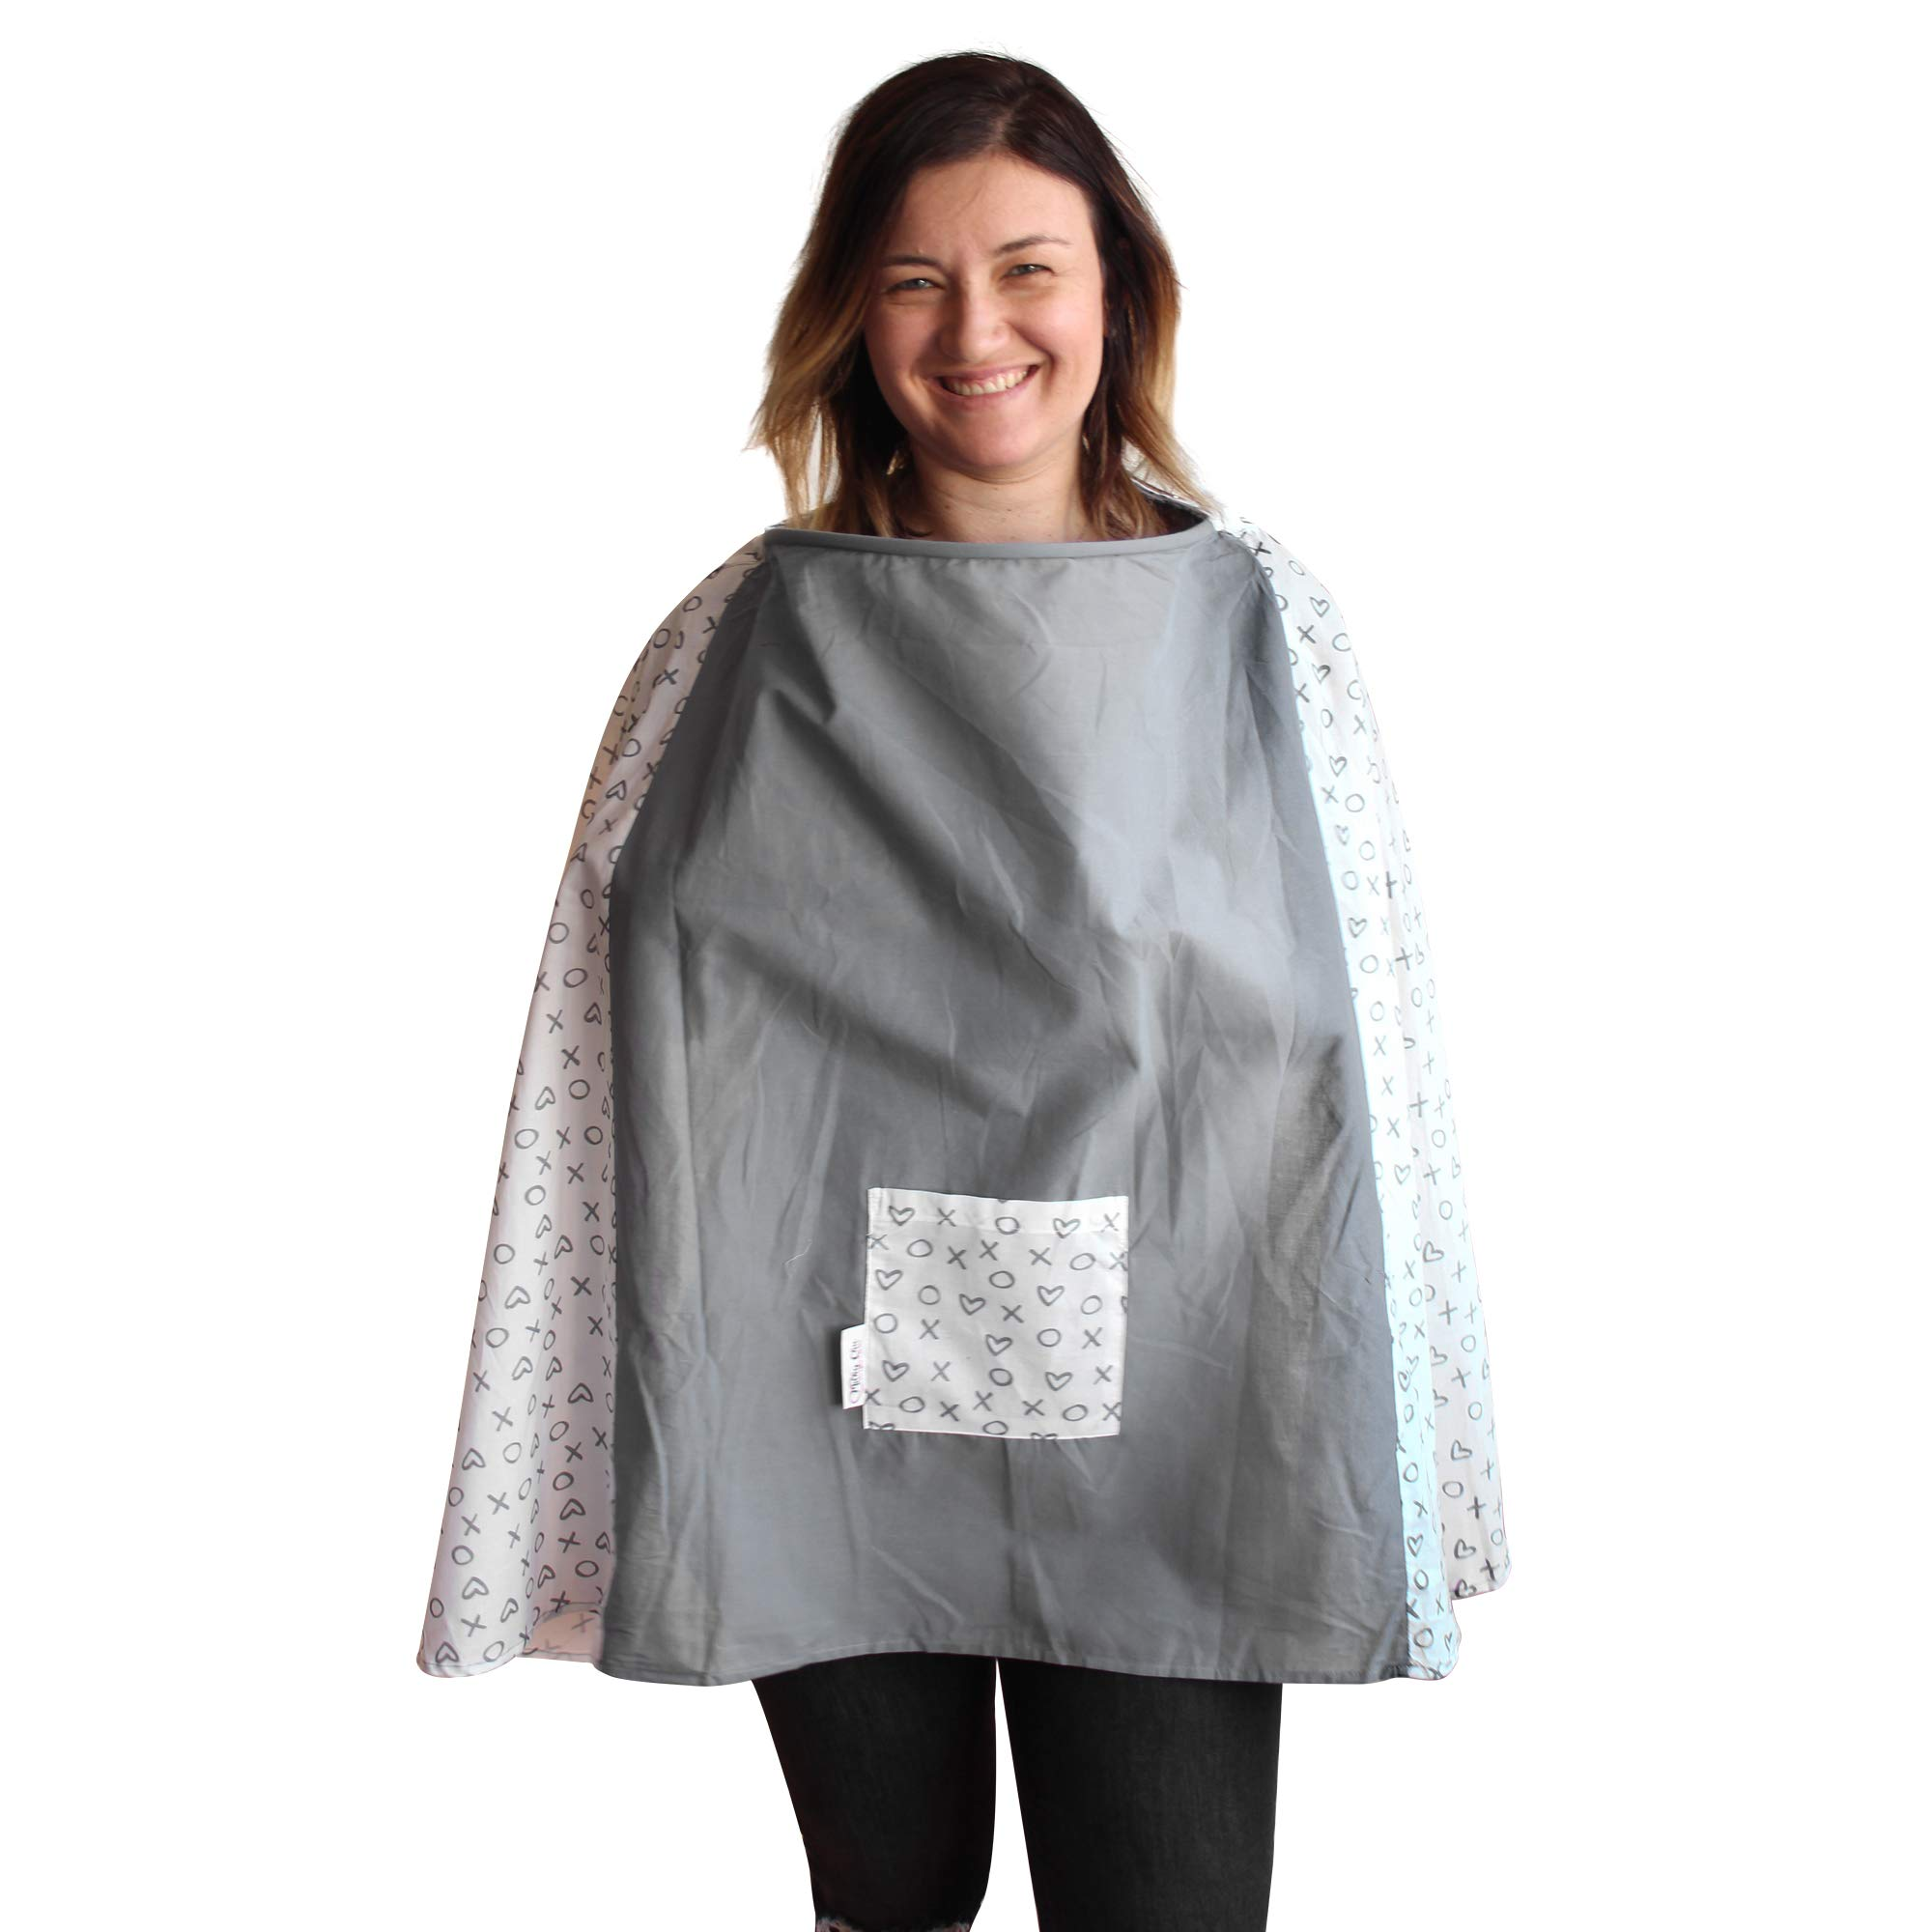 The New Full Coverage 360 Nursing Poncho,Nursing Cover for Breastfeeding,Nursing Cover with Wire,100% Breathable Lightweight Cotton,Multi-Use Breastfeeding Cover (White & Gray XOXO)